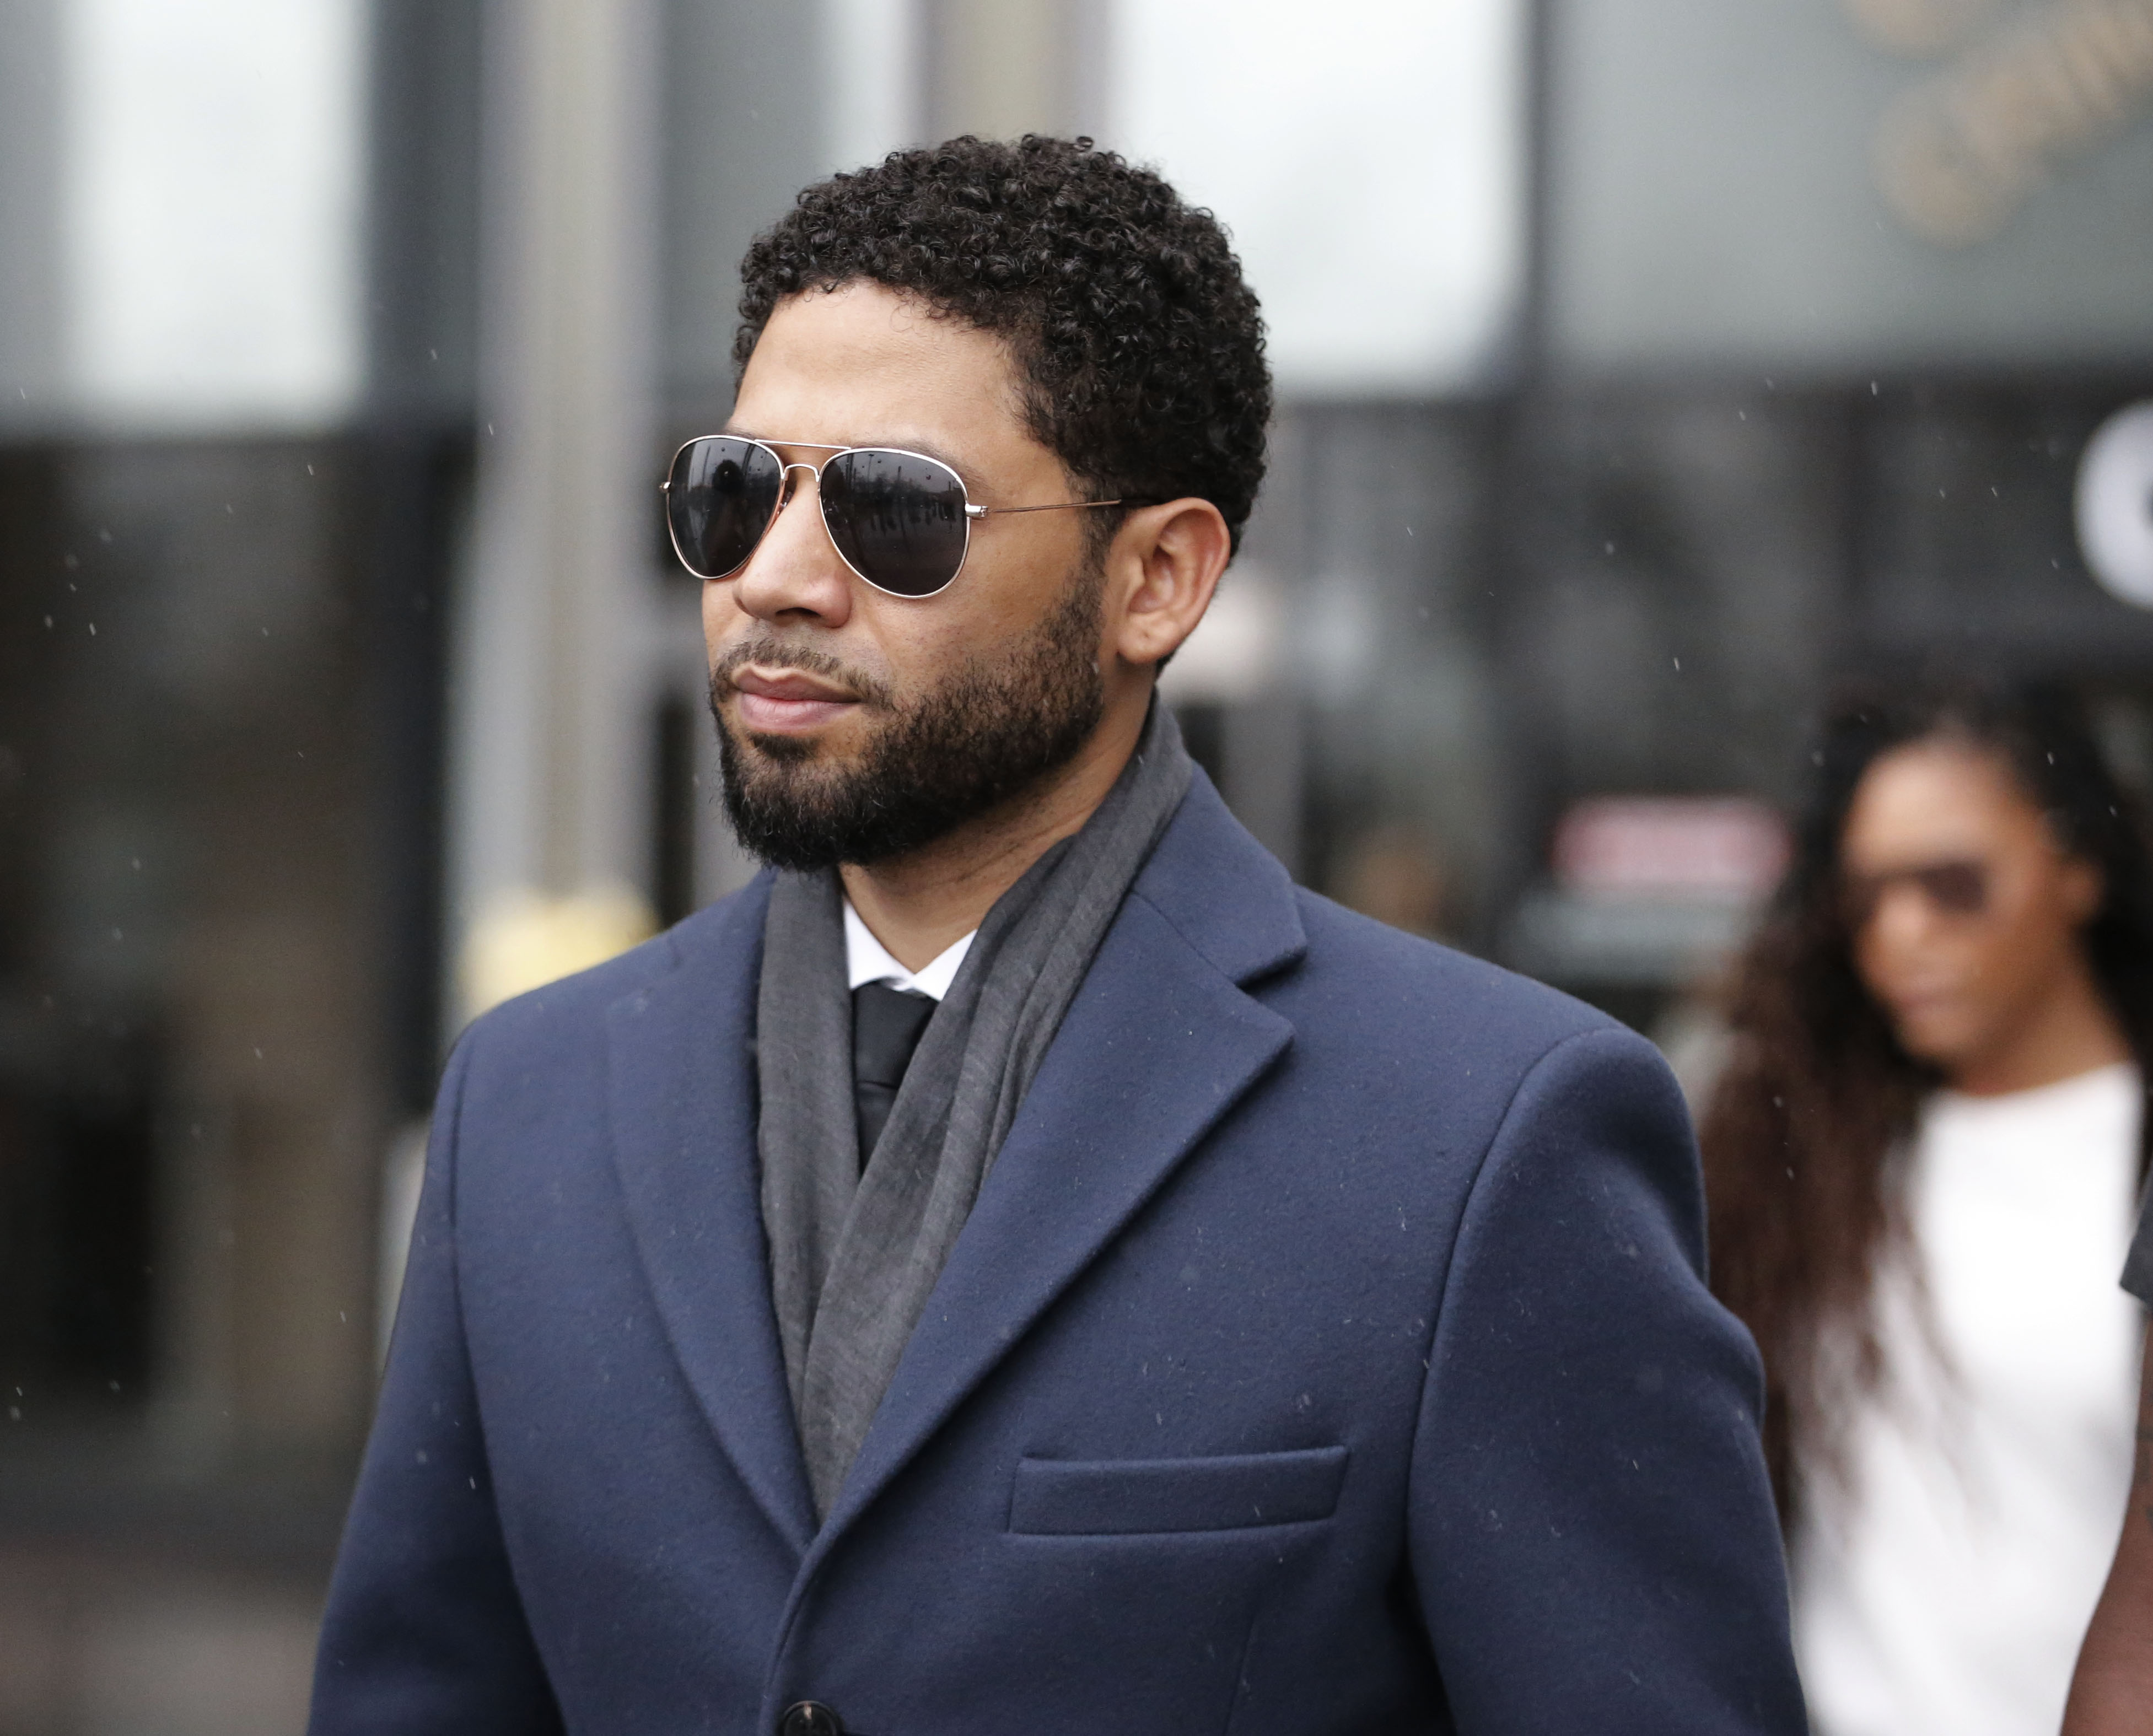 Chicago to sue Jussie Smollett for cost of alleged 'false police report'